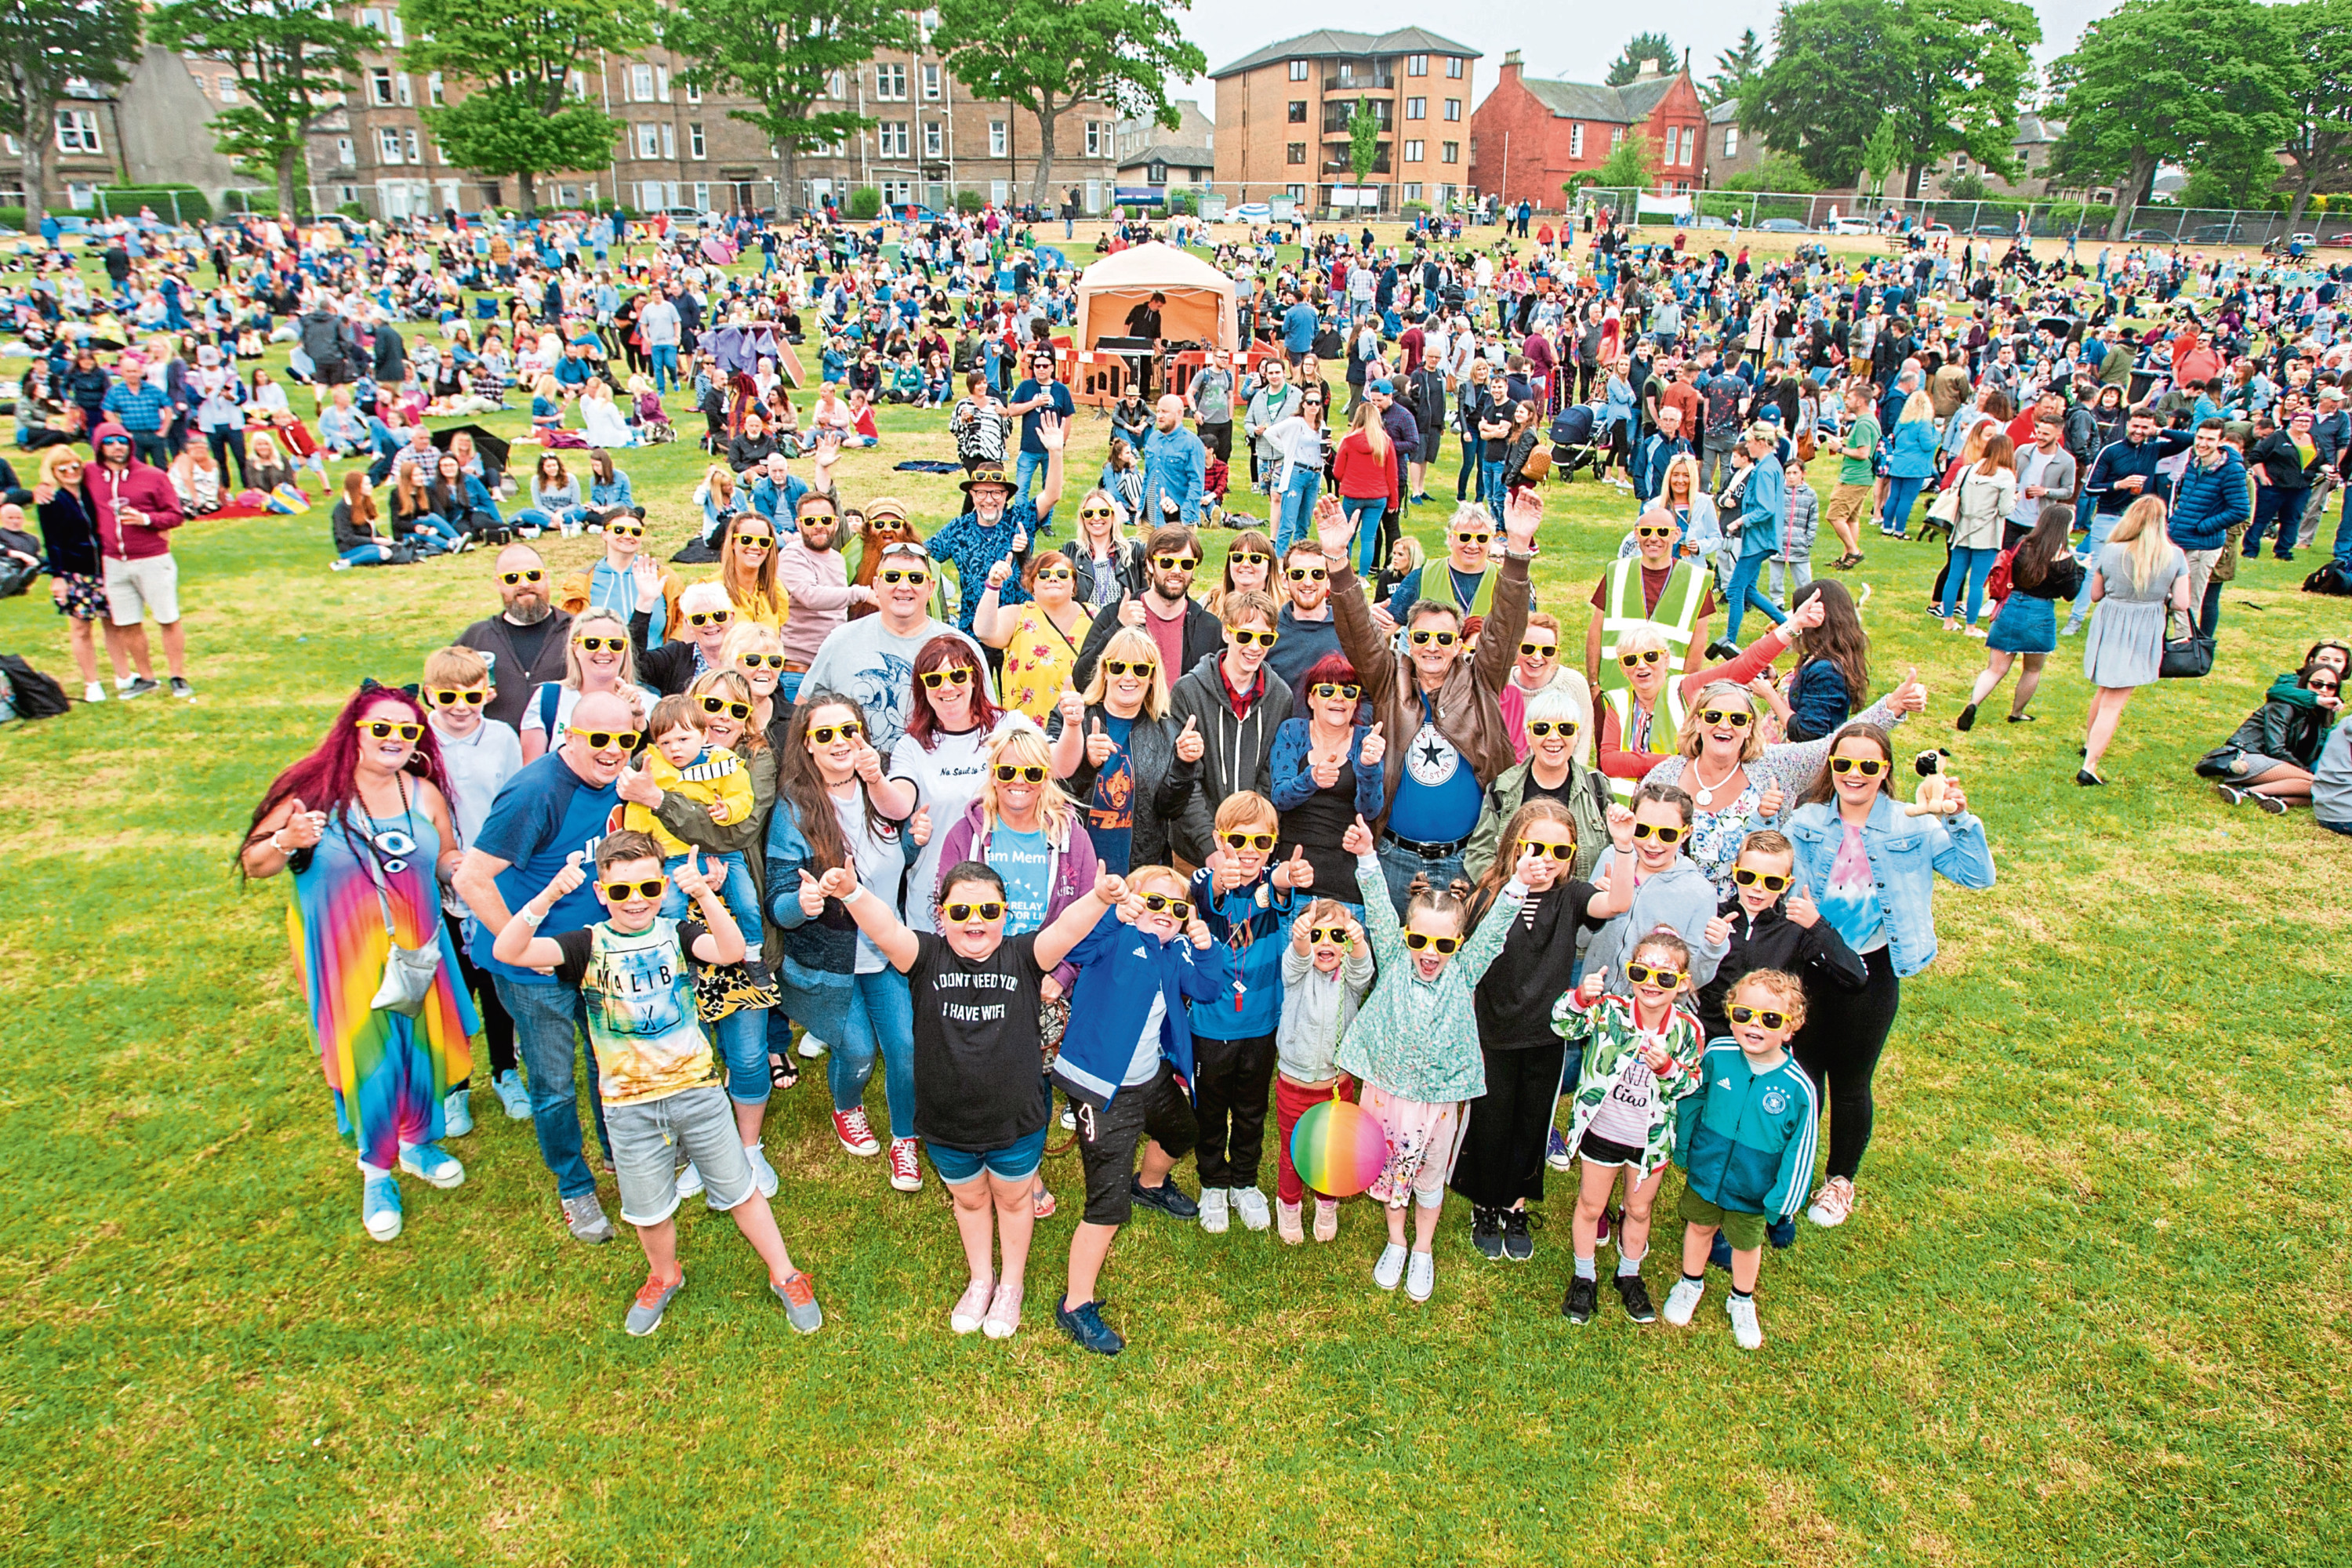 TELE News, unknown reporter Story, CR000 WestFest 2018 event at Magdalen Green, Dundee. Picture shows #SunnyDundee sunglasses were on show. ONLY TO BE USED BY TELEGRAPH AS GLASSES DONATED BY EVENING TELEGRAPH Magdalen Green, Dundee. Sunday 3rd June 2018.